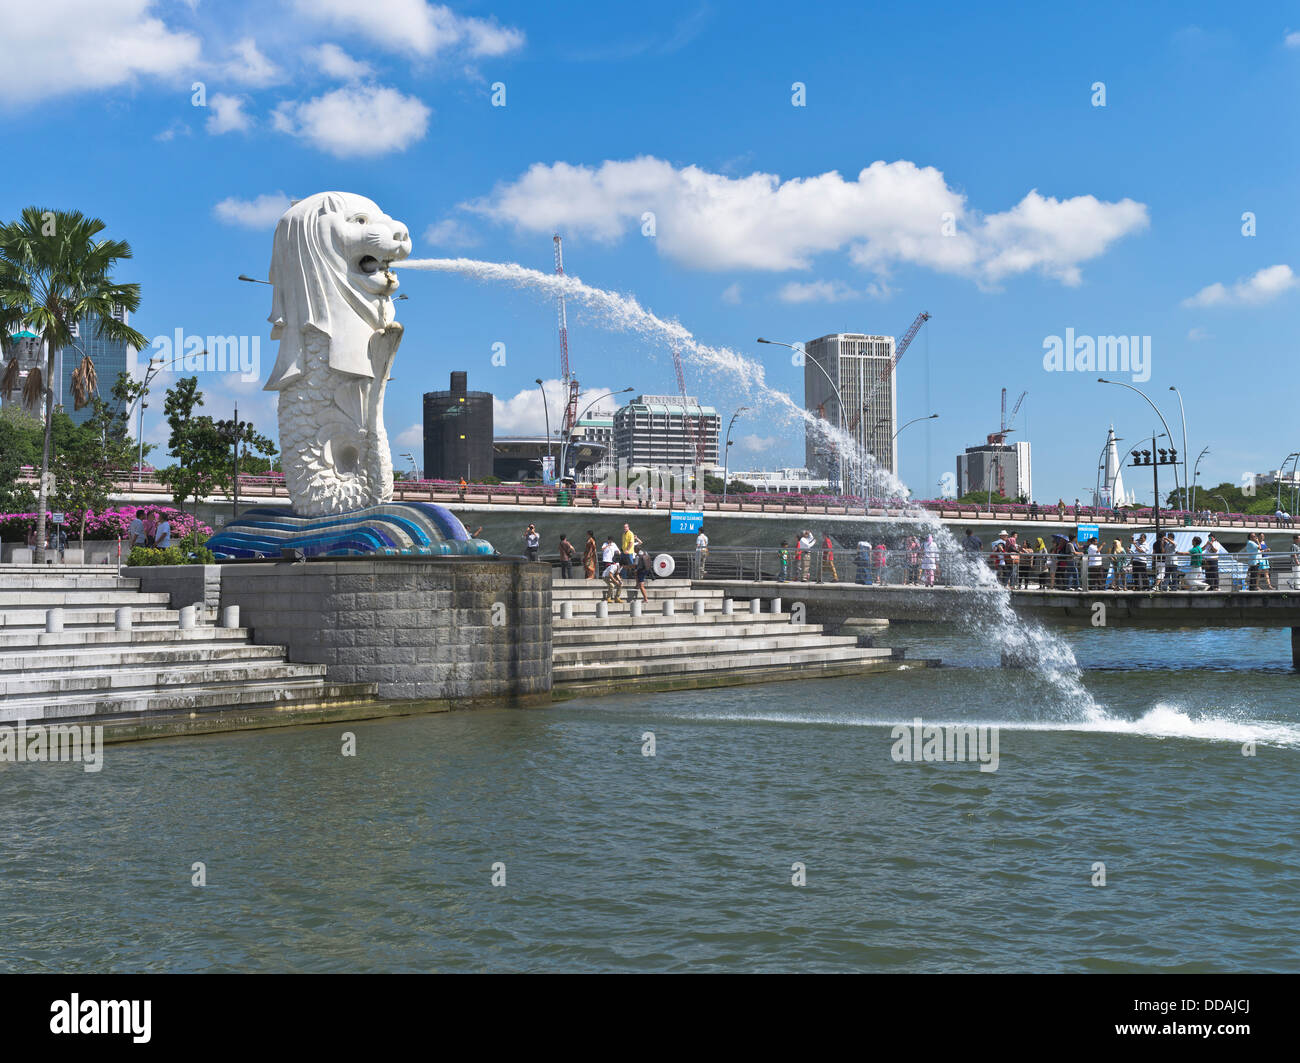 dh Marine Bay DOWNTOWN CORE SINGAPORE Merlion statue fountain Merlion Park waterfront Stock Photo